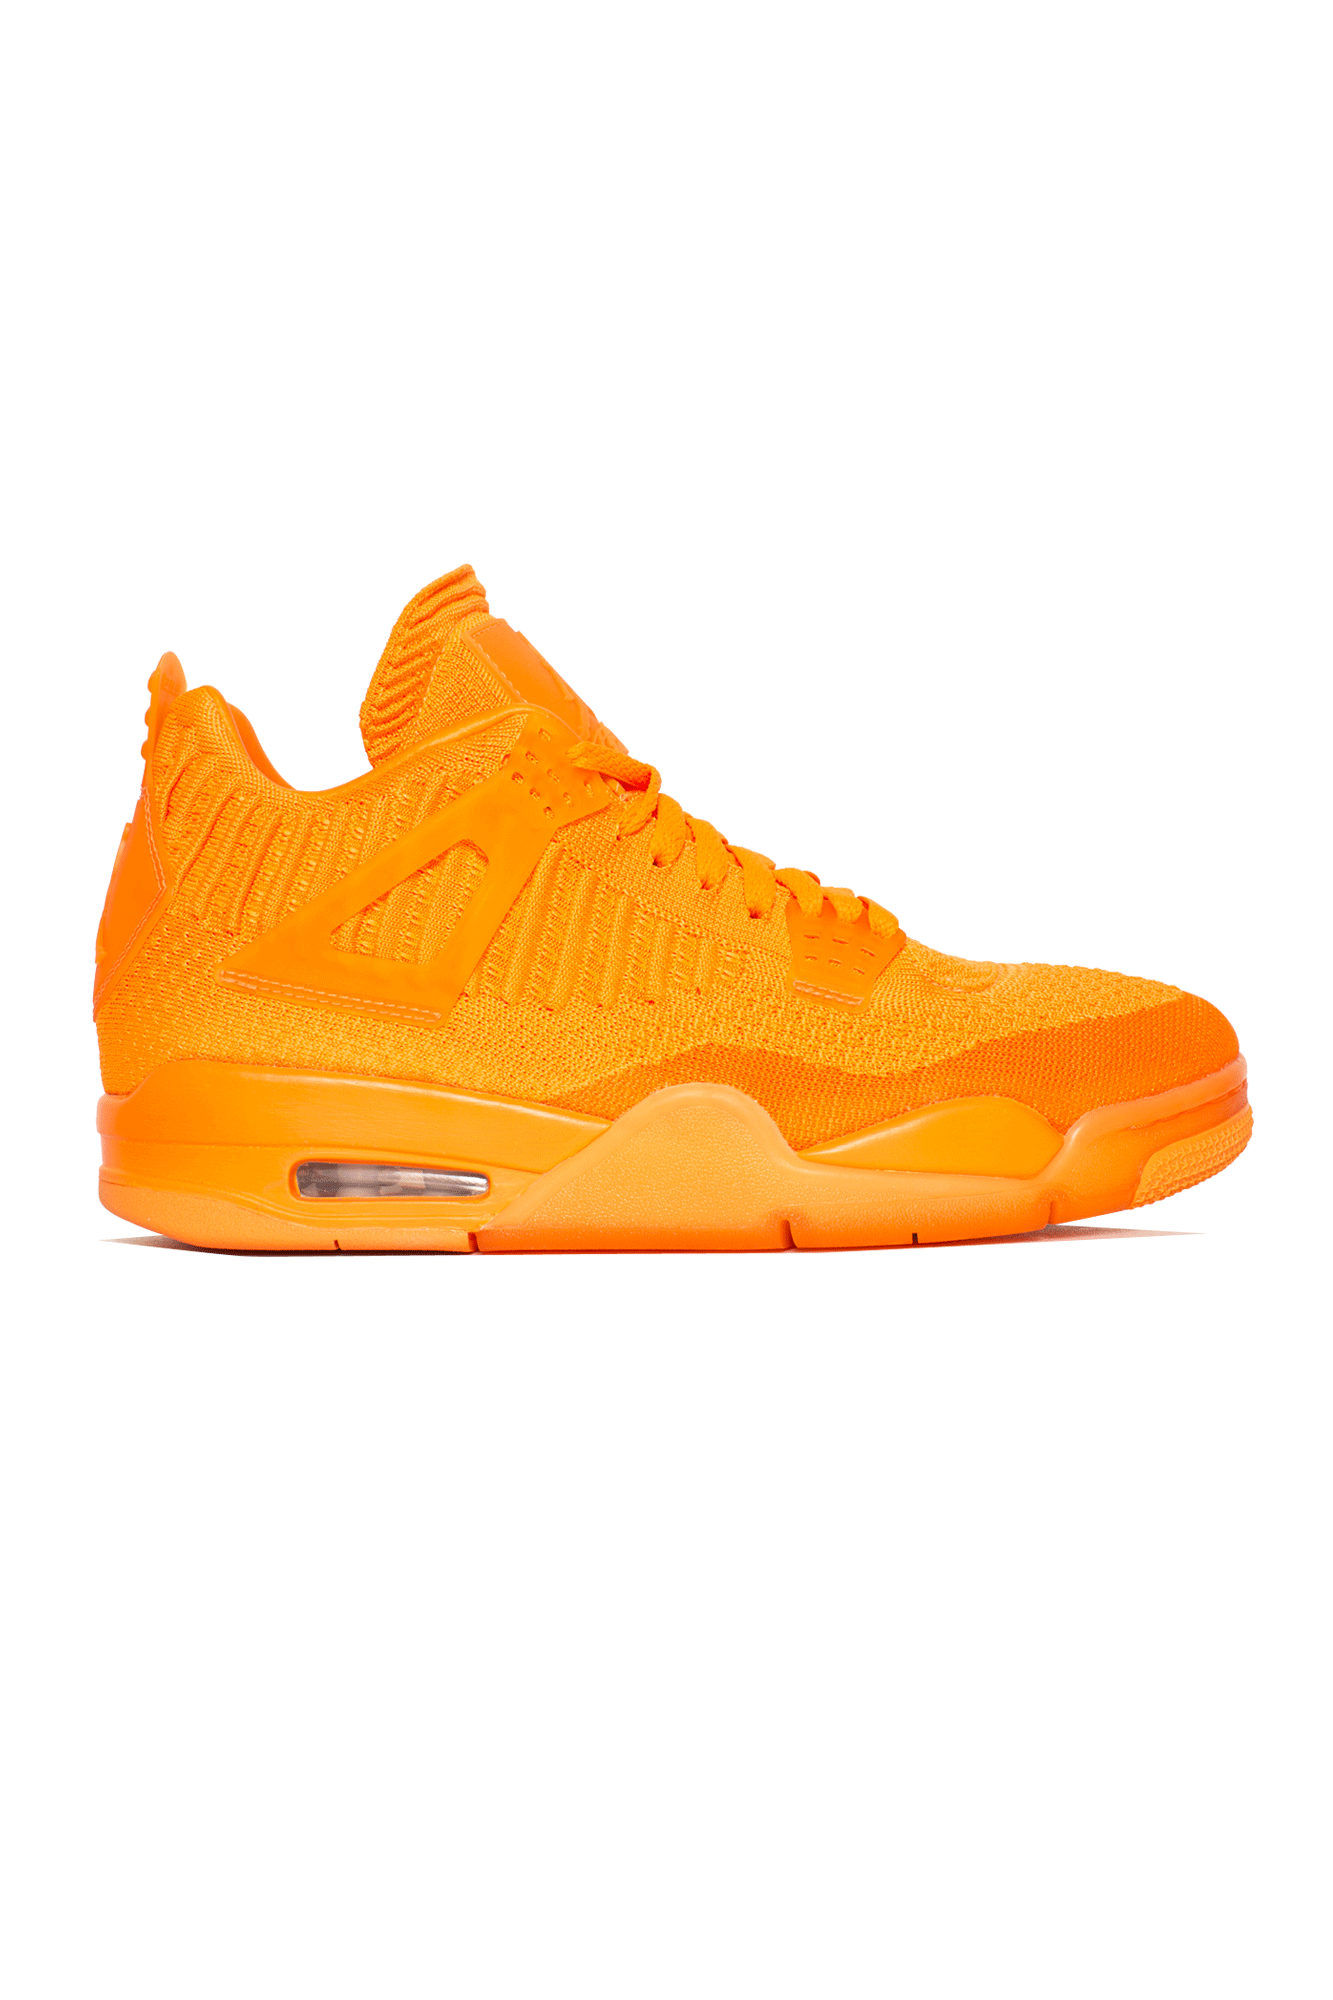 Air Jordan Sneakers Air Jordan 4 Retro Flyknit Orange AQ3559-#000#800#4 - One Block Down